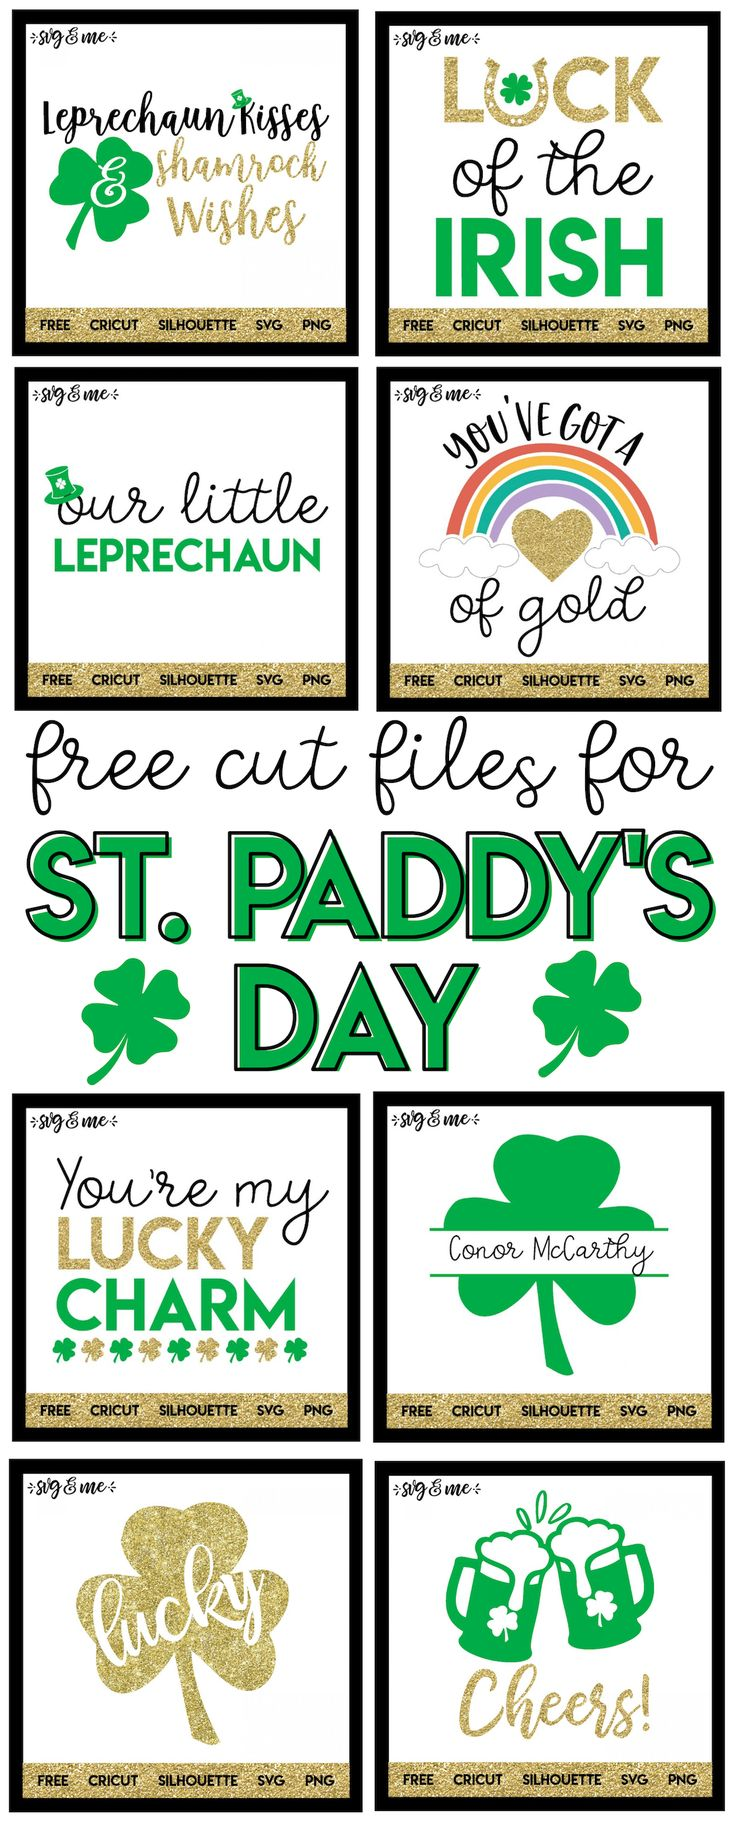 YES! This is an AMAZING roundup of tons of St. Patrick's Day free SVG cut files for all your DIY St. Patrick's Day decor and crafting needs! #cricut #silhouette #diy